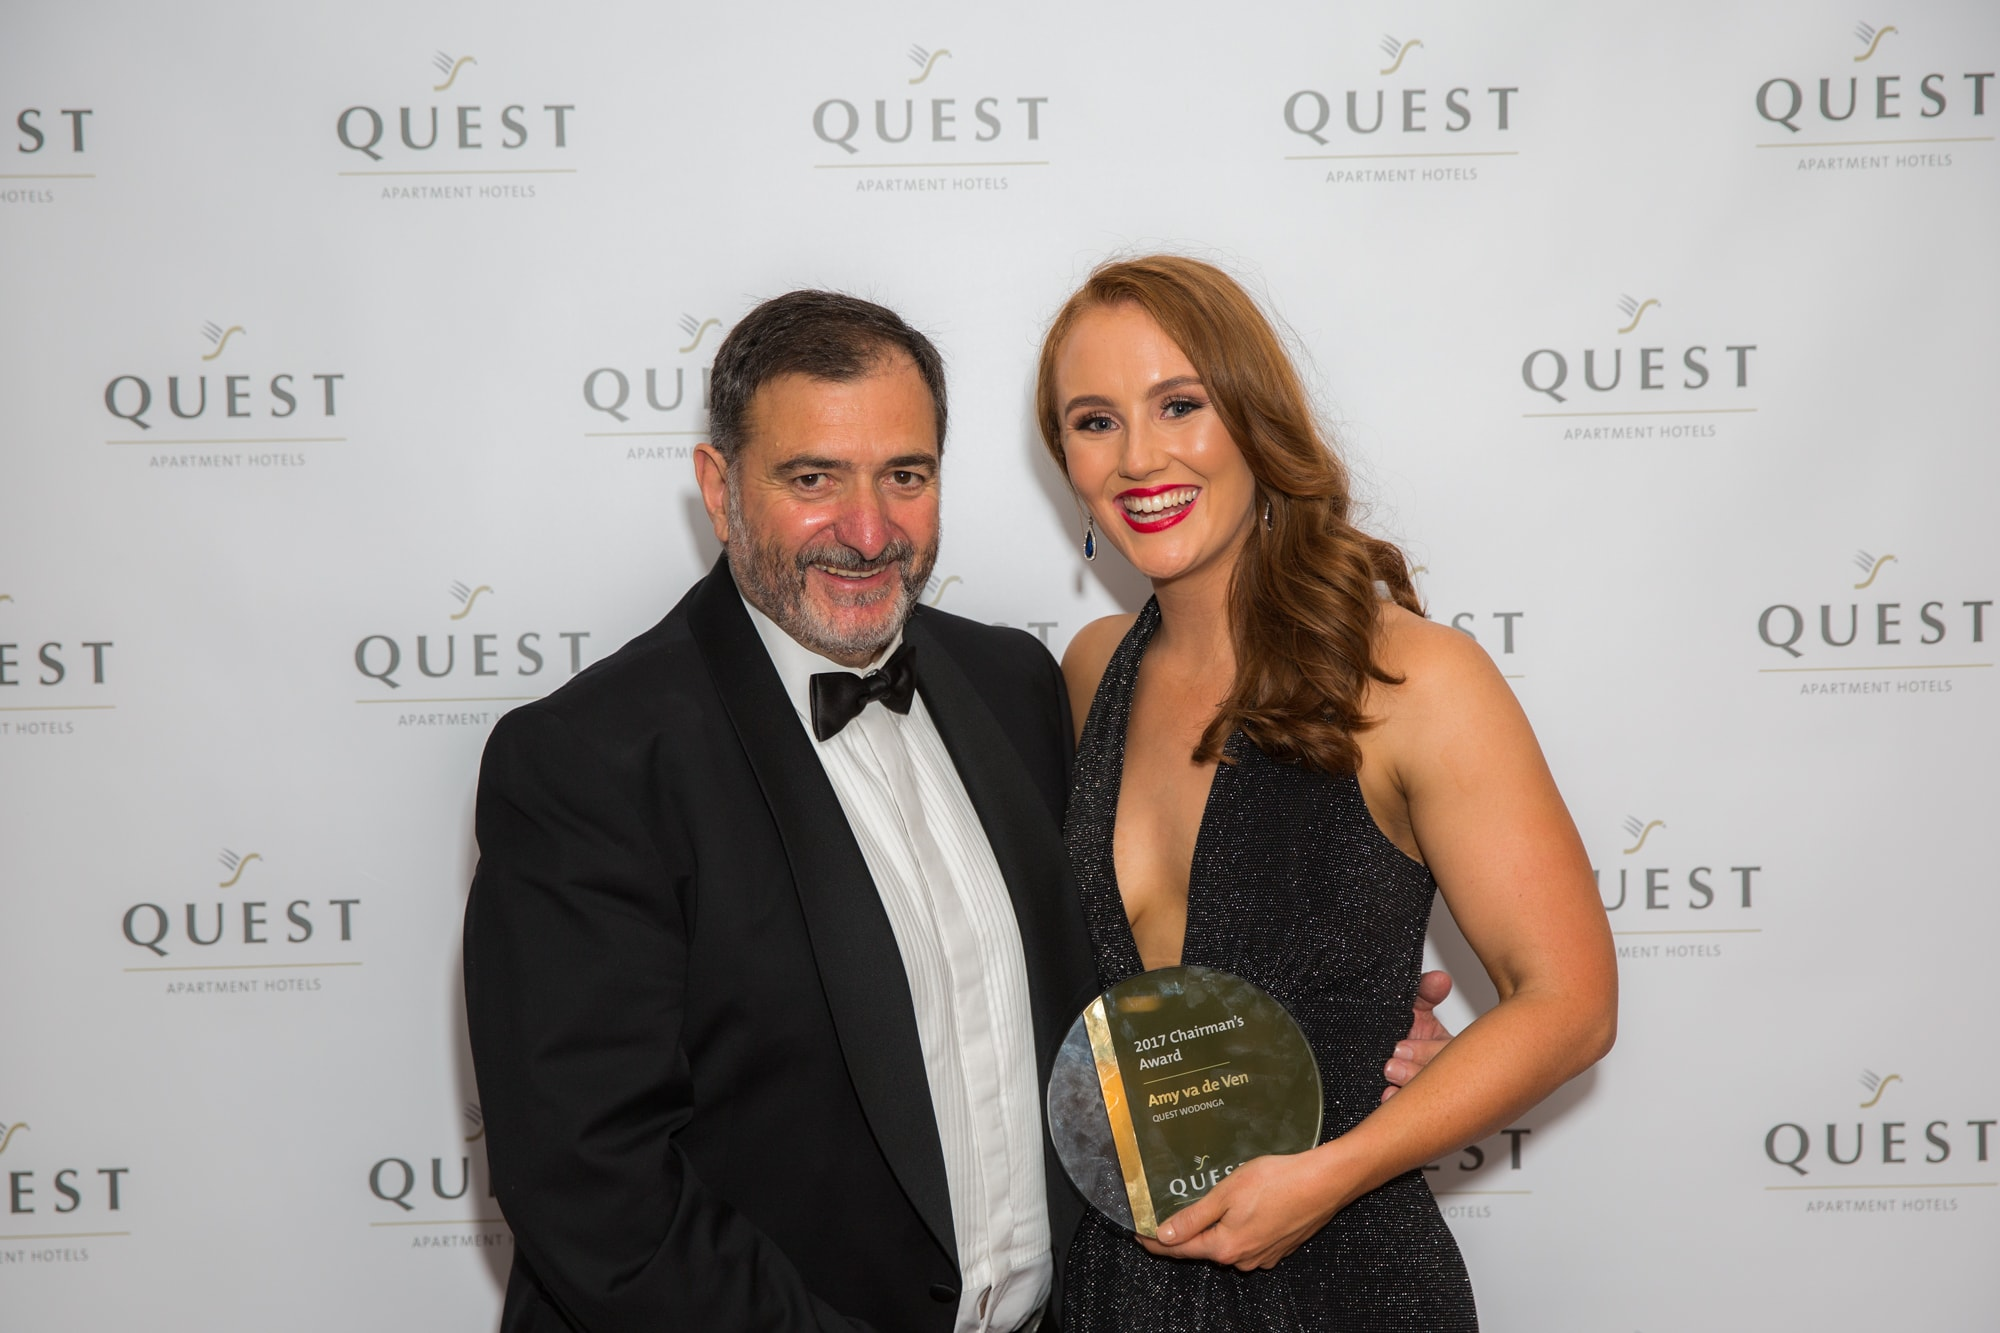 Quest Chairmans Award - Amy van de Ven